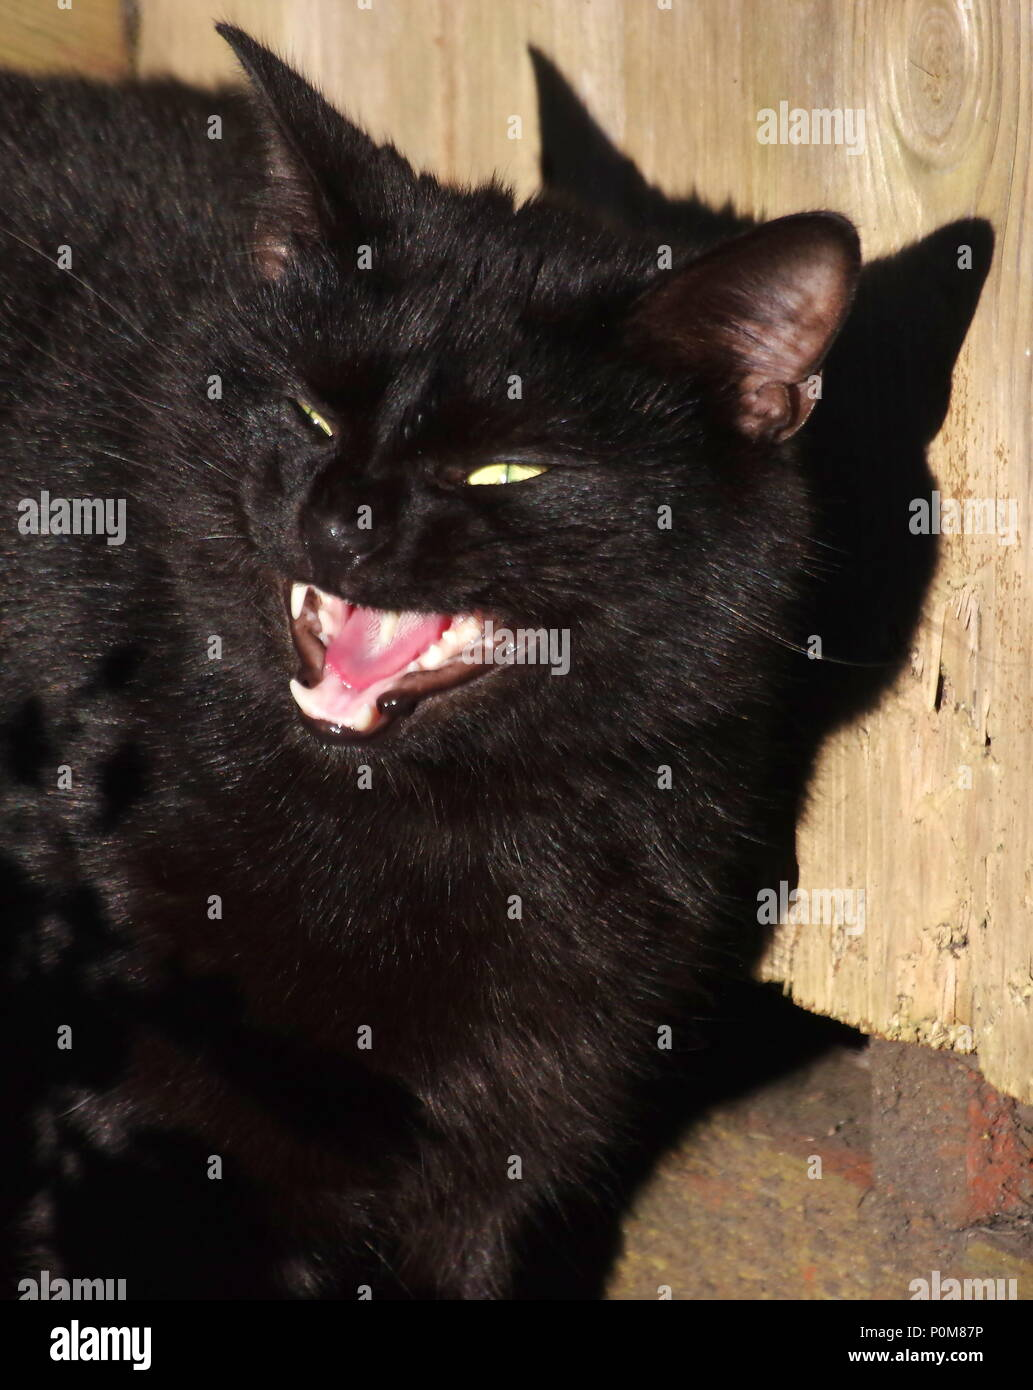 Page 2 Black Cat Licking Lips High Resolution Stock Photography